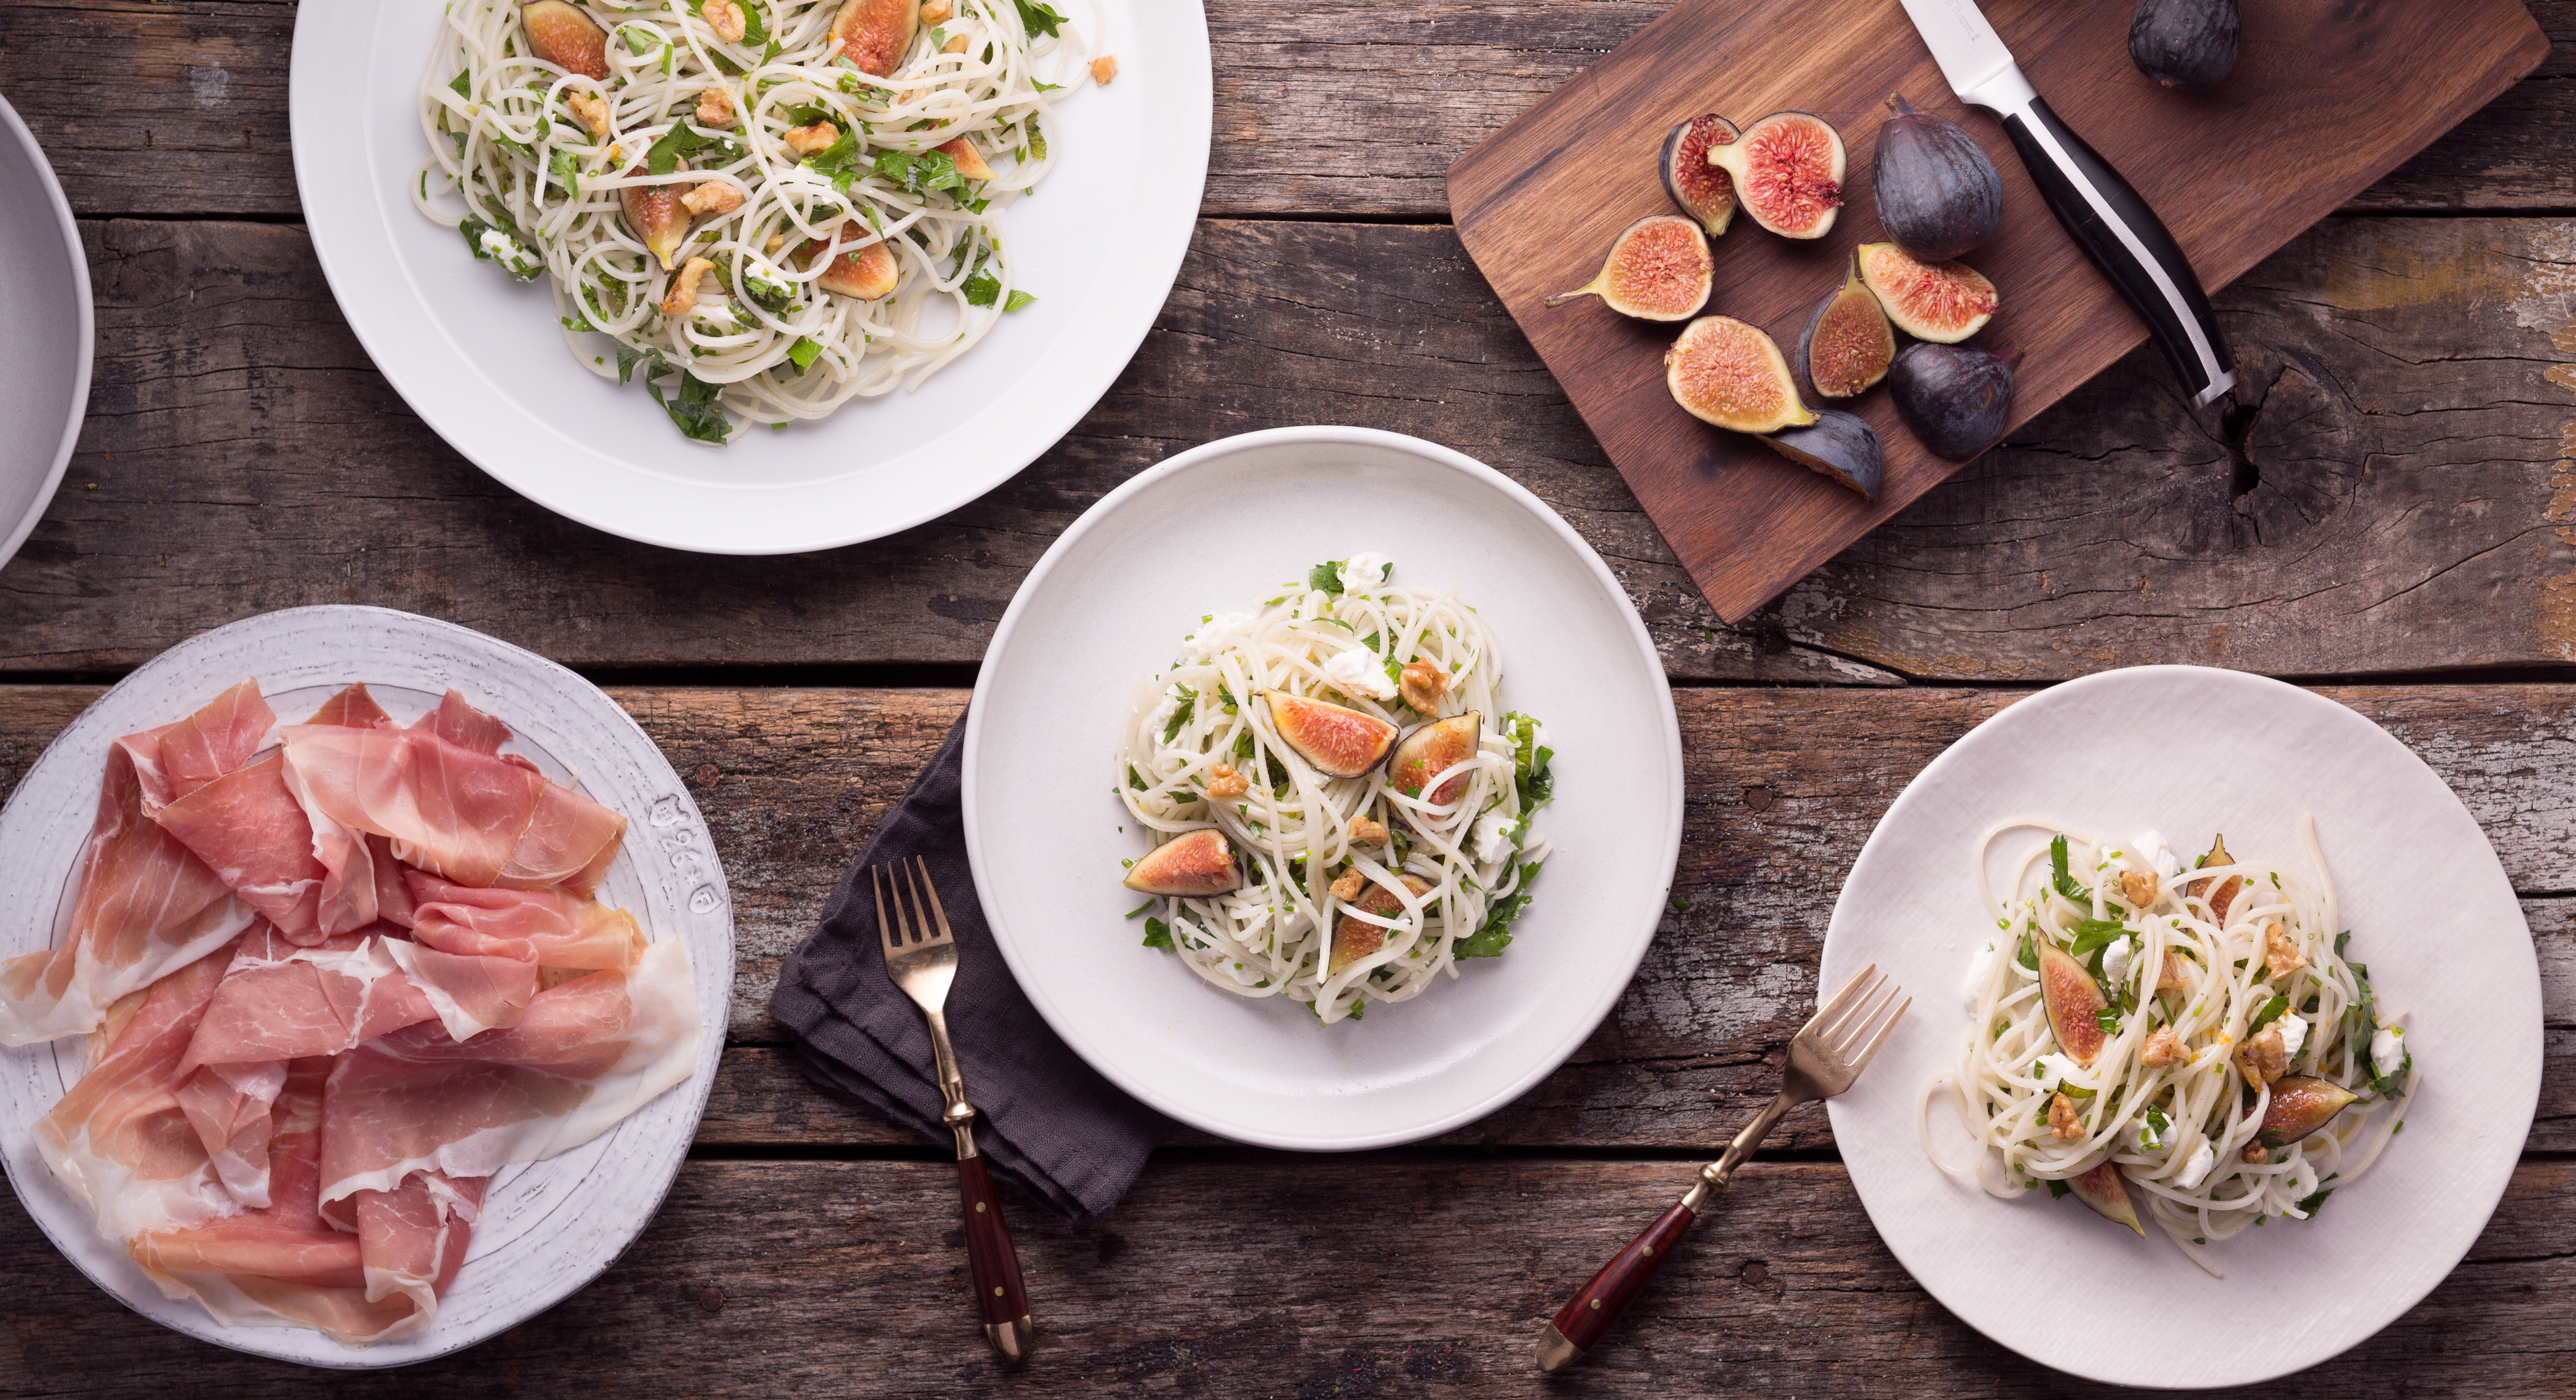 Creamy Goat Cheese and Figs Make This Simple Pasta Dish Divine